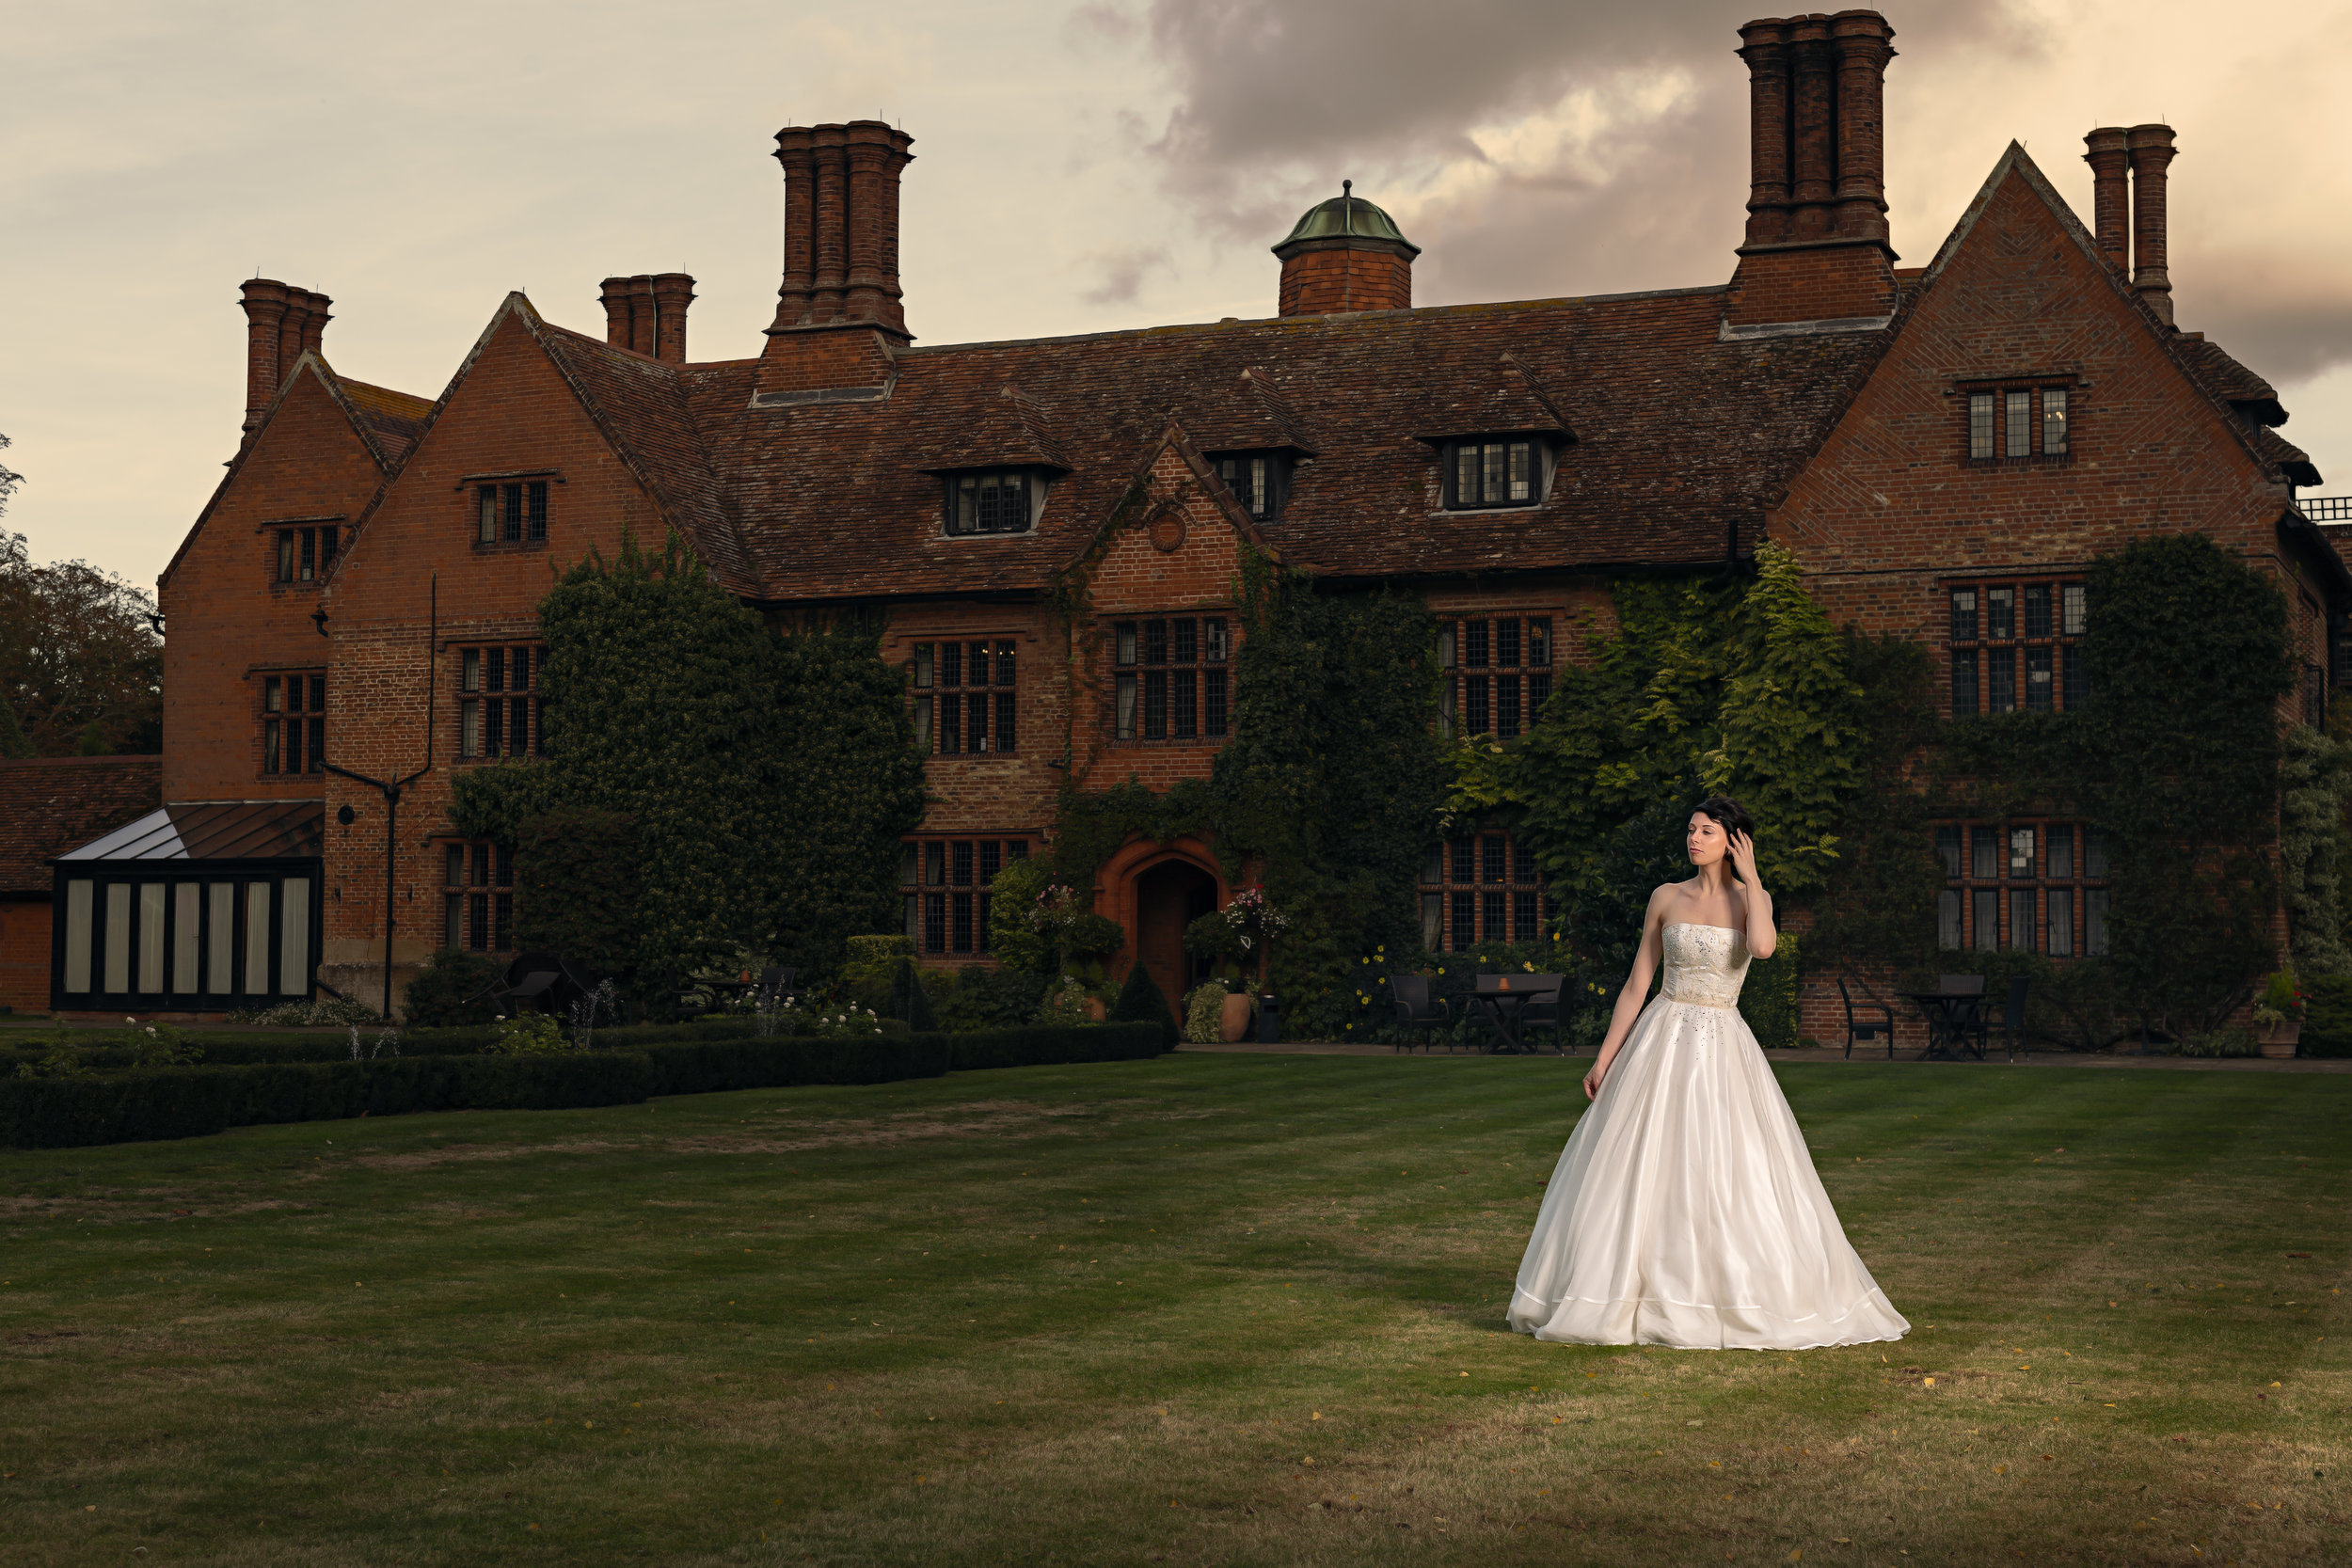 Martin Dobson Couture - Woodhall Manor - 0371 - October 02, 2018 - copyright Foyers Photography-Edit.JPG